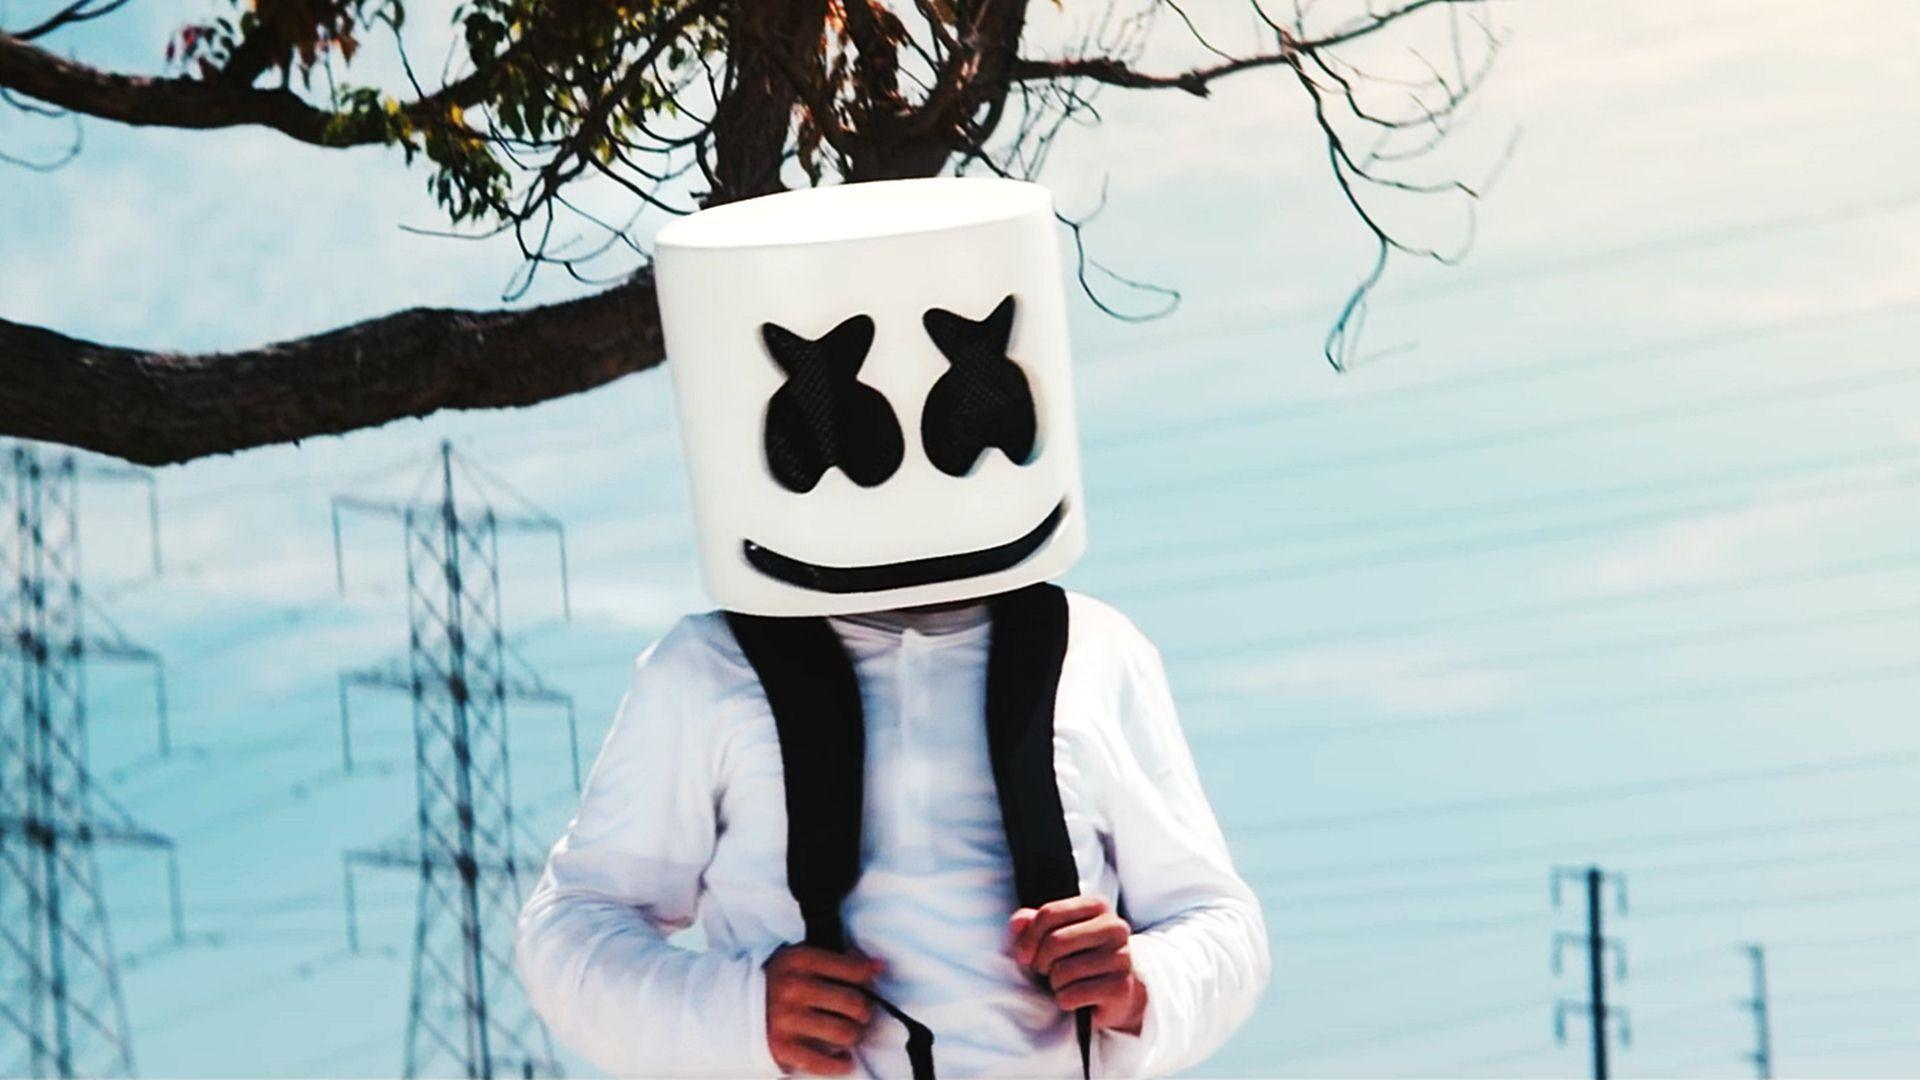 Marshmello Wallpapers HD Backgrounds, Images, Pics, Photos Free ...